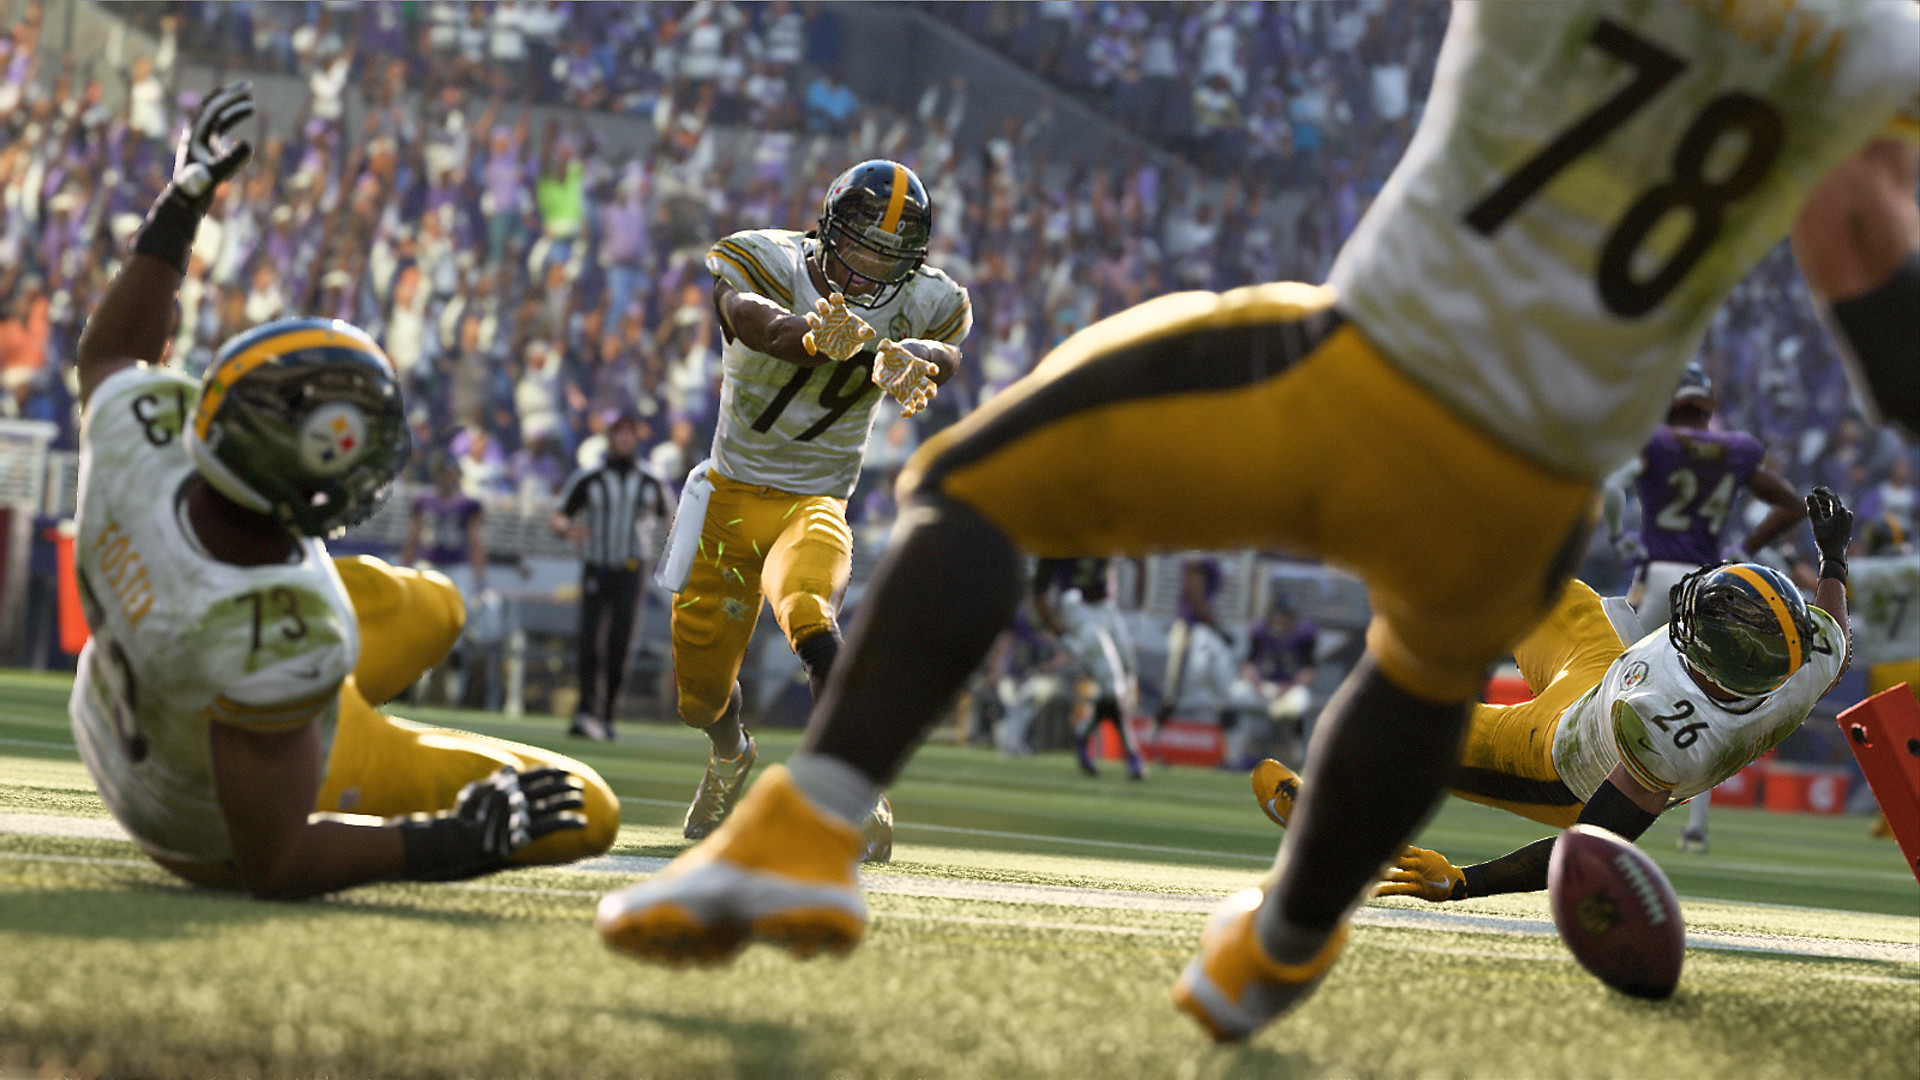 madden-nfl-19-screenshot-01-ps4-us-22june2018